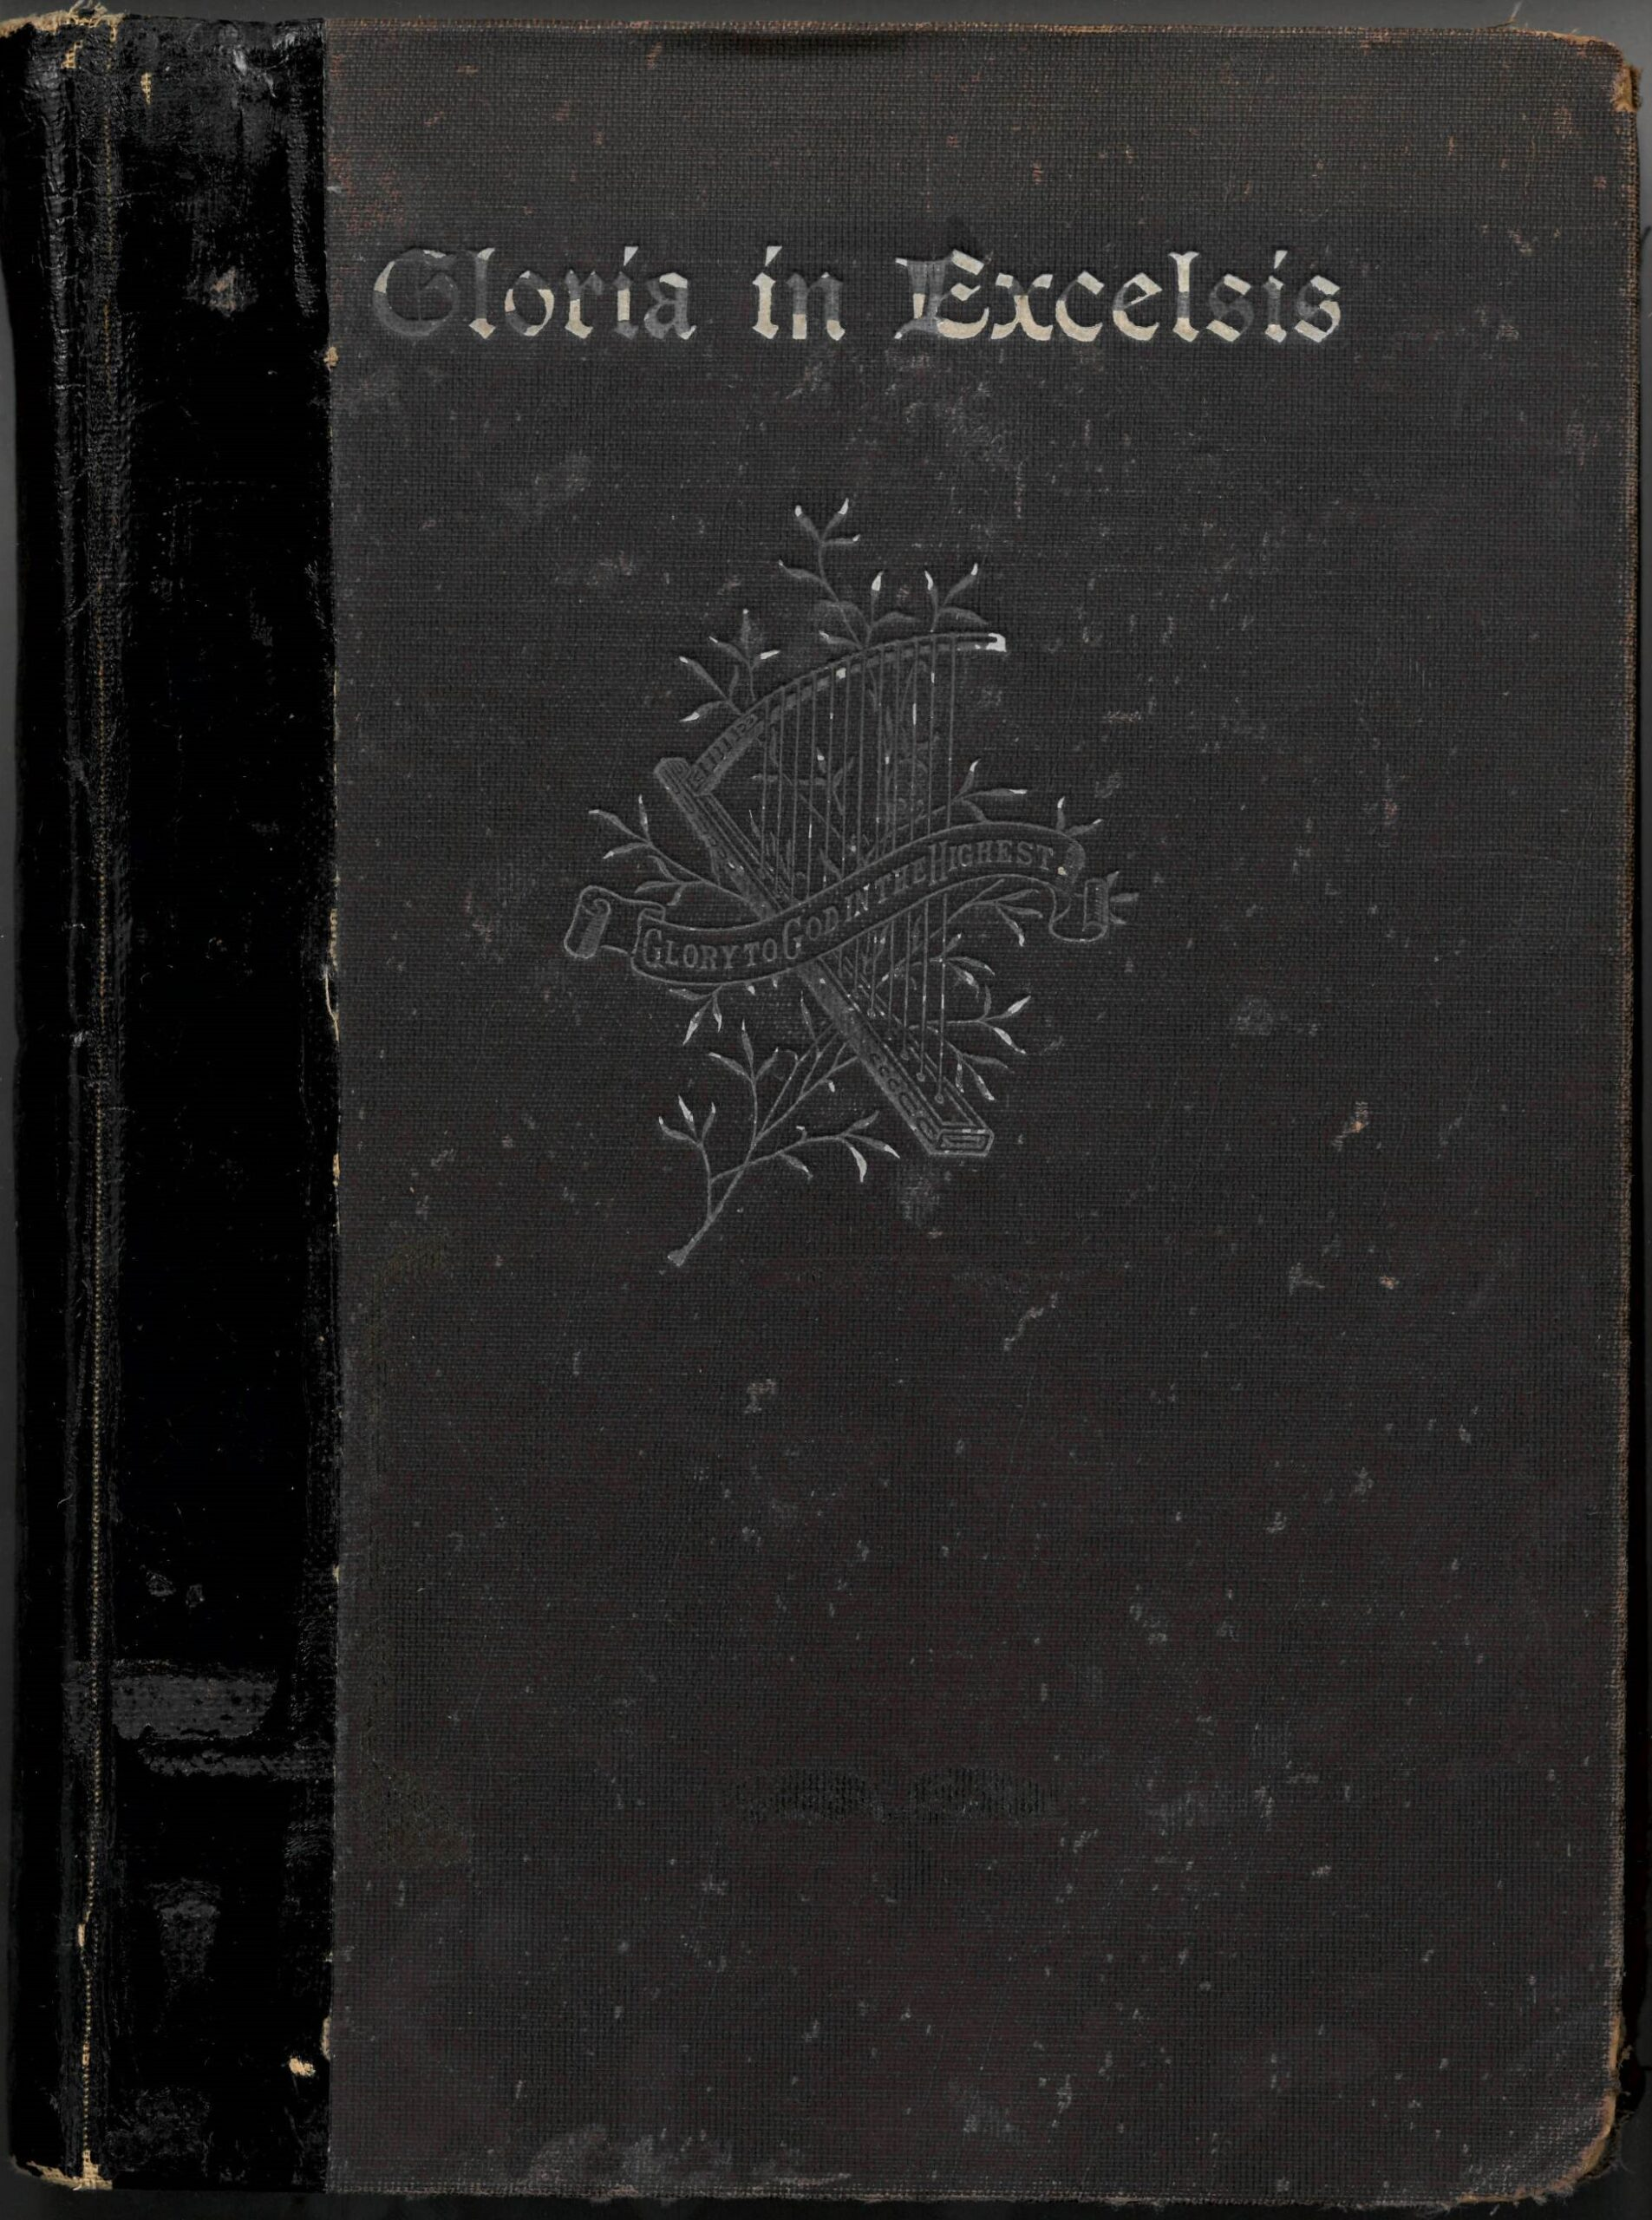 Gloria in Excelsis, A Collection of Responsive Scripture Readings, Standard Hymns and Tunes, and Spiritual Songs for Worship in the Church and Home. William E. M. Hackleman, Compiler. Hackleman Music Company: Indianapolis and Christian Board of Publication: St. Louis, 1905. Front cover.